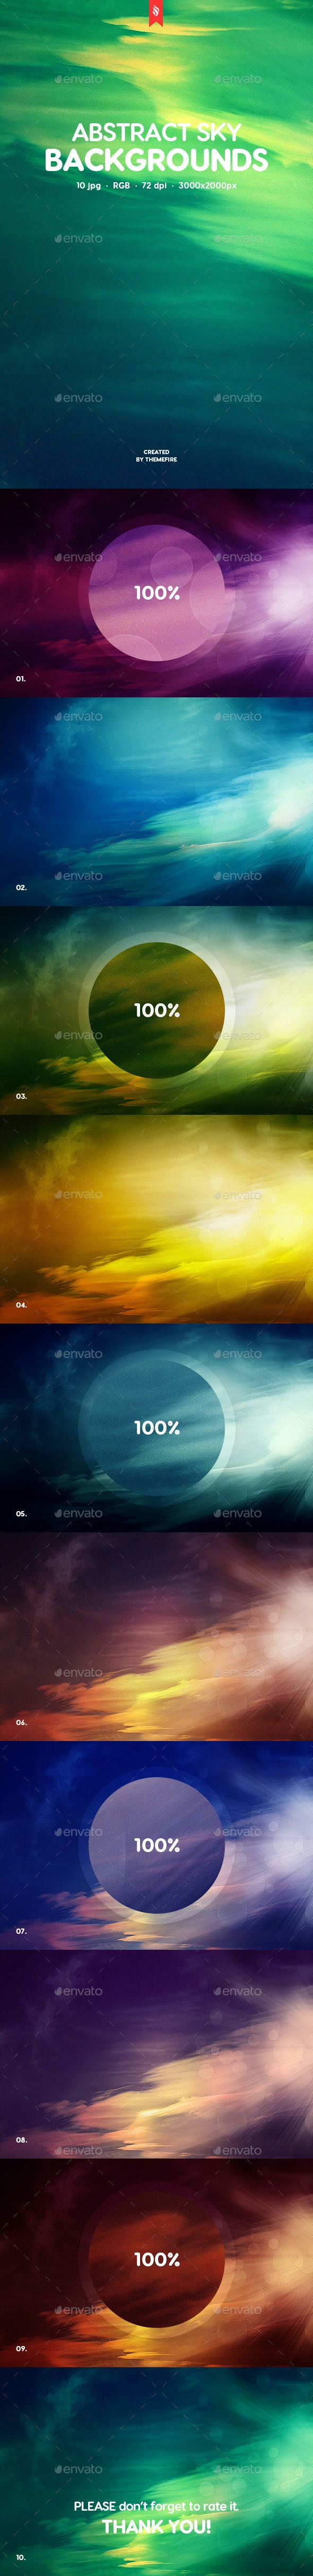 Sky Backgrounds - Abstract Backgrounds